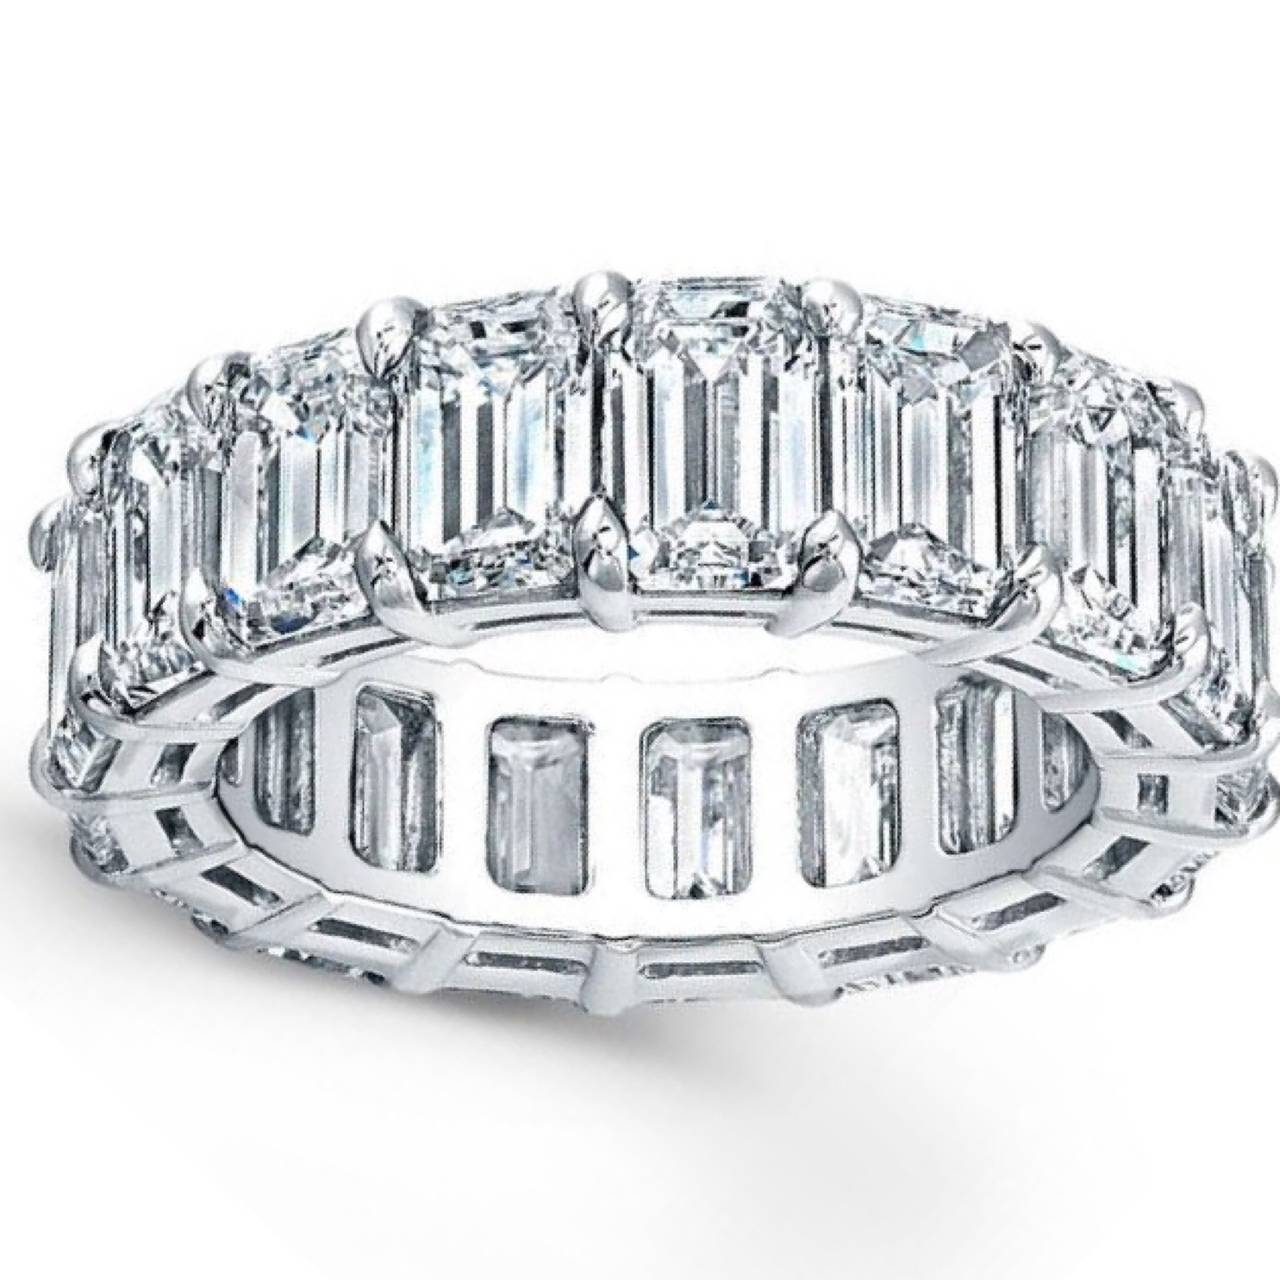 Emerald Cut Diamond Platinum Eternity Anniversary Band Ring At 1stdibs Intended For Best And Newest Emerald Anniversary Rings (View 5 of 25)